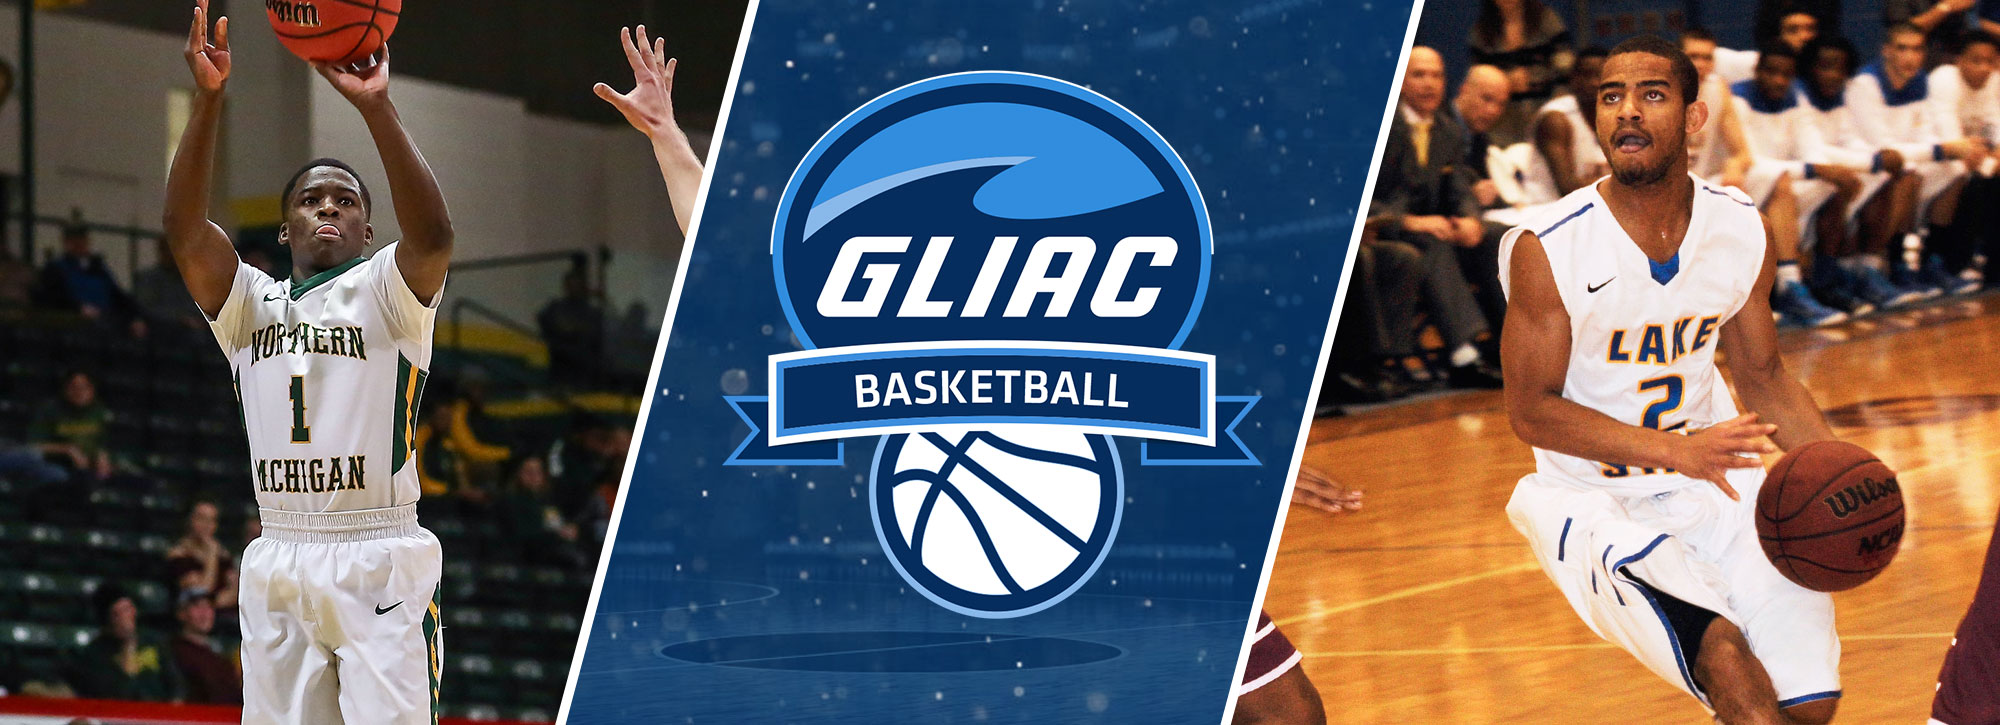 NMU Survives in OT; Tech's Late Run Highlights #GLIACMBB Saturday Action